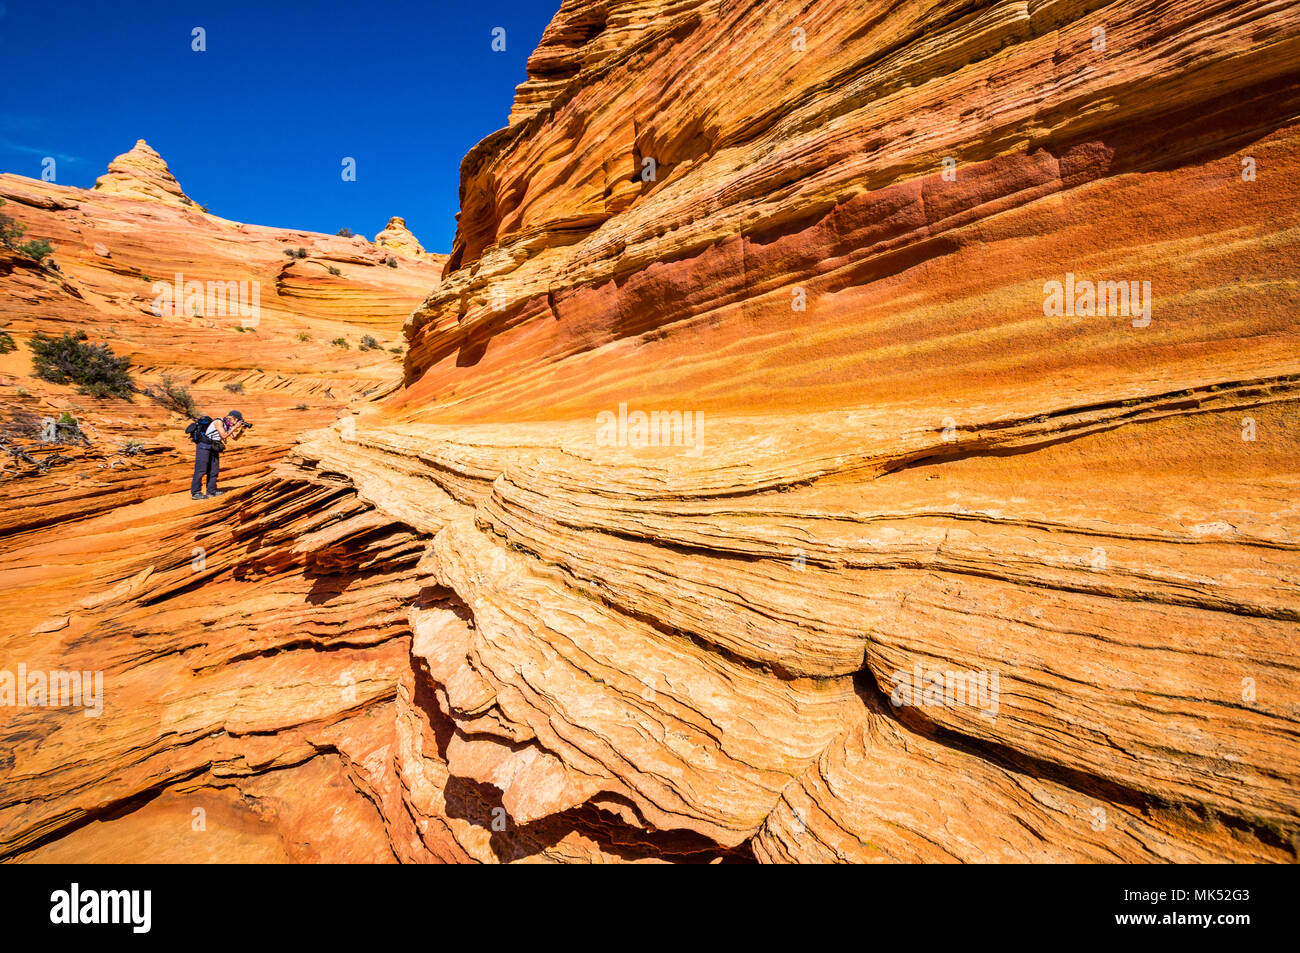 Photographeolorful sandstone formations Cottonwood access area South Coyote Buttes Vermilion Cliffs National Monument Arizona United States of America - Stock Image